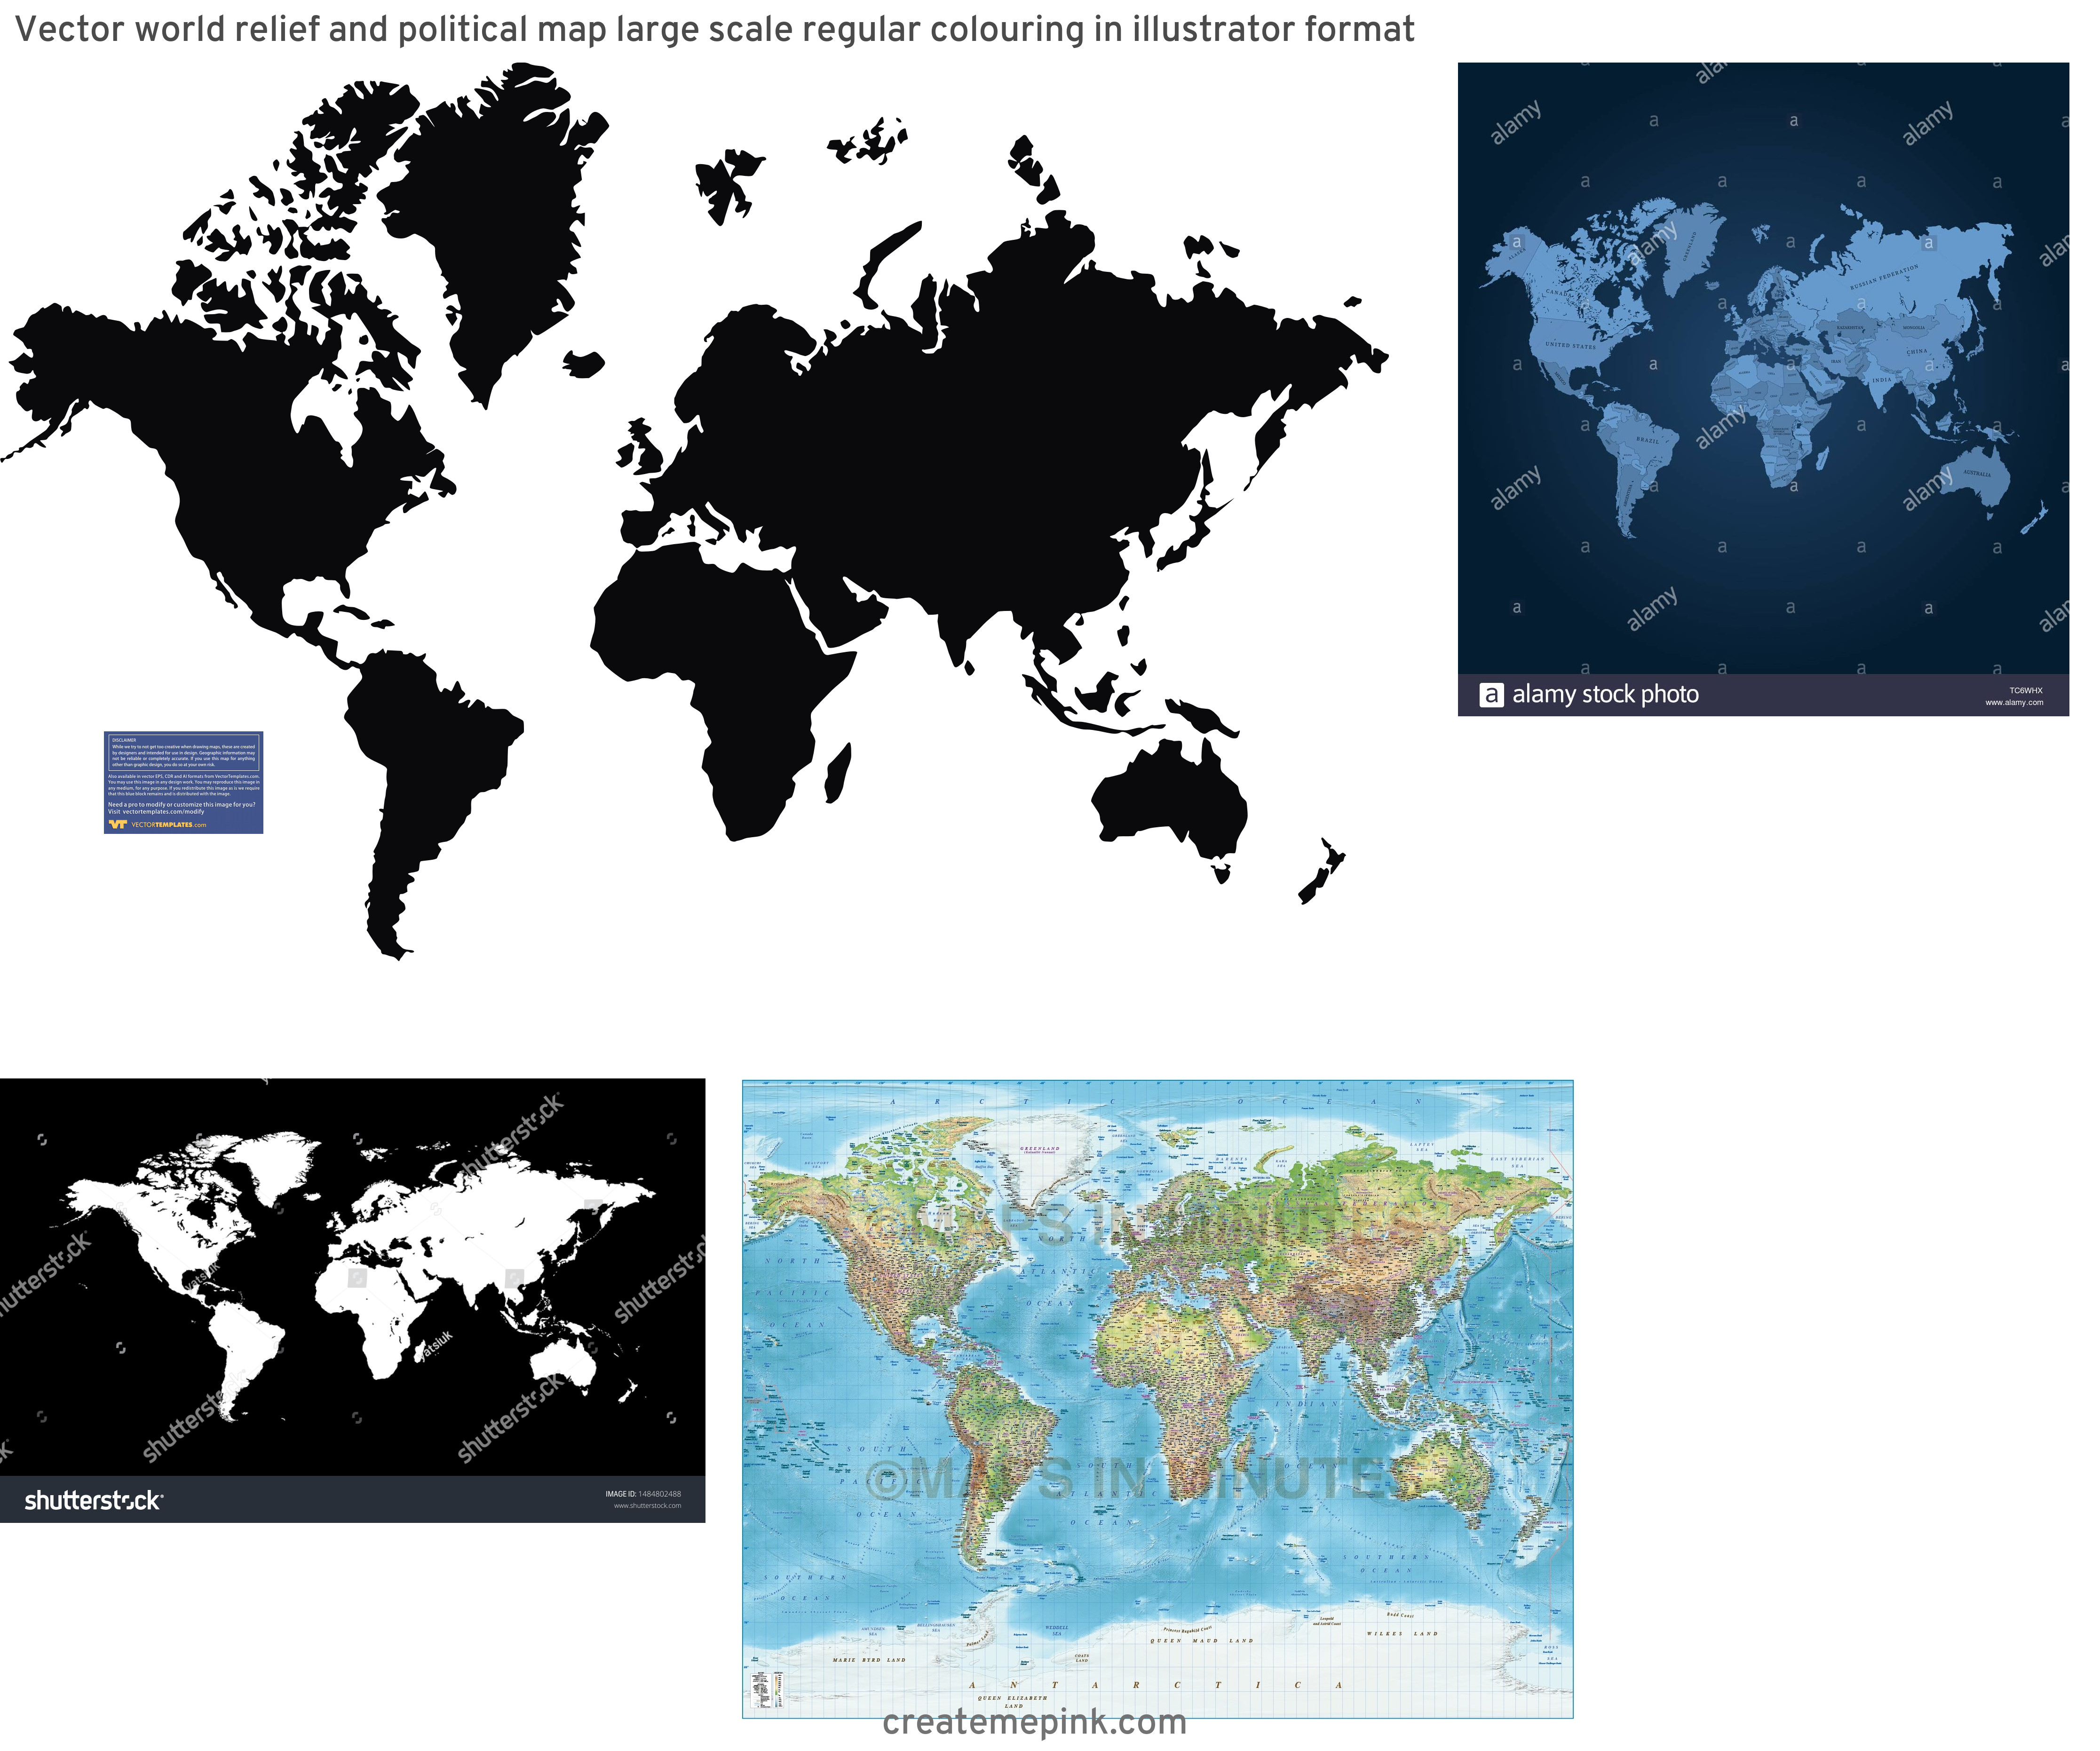 Accurate World Map Vector: Vector World Relief And Political Map Large Scale Regular Colouring In Illustrator Format